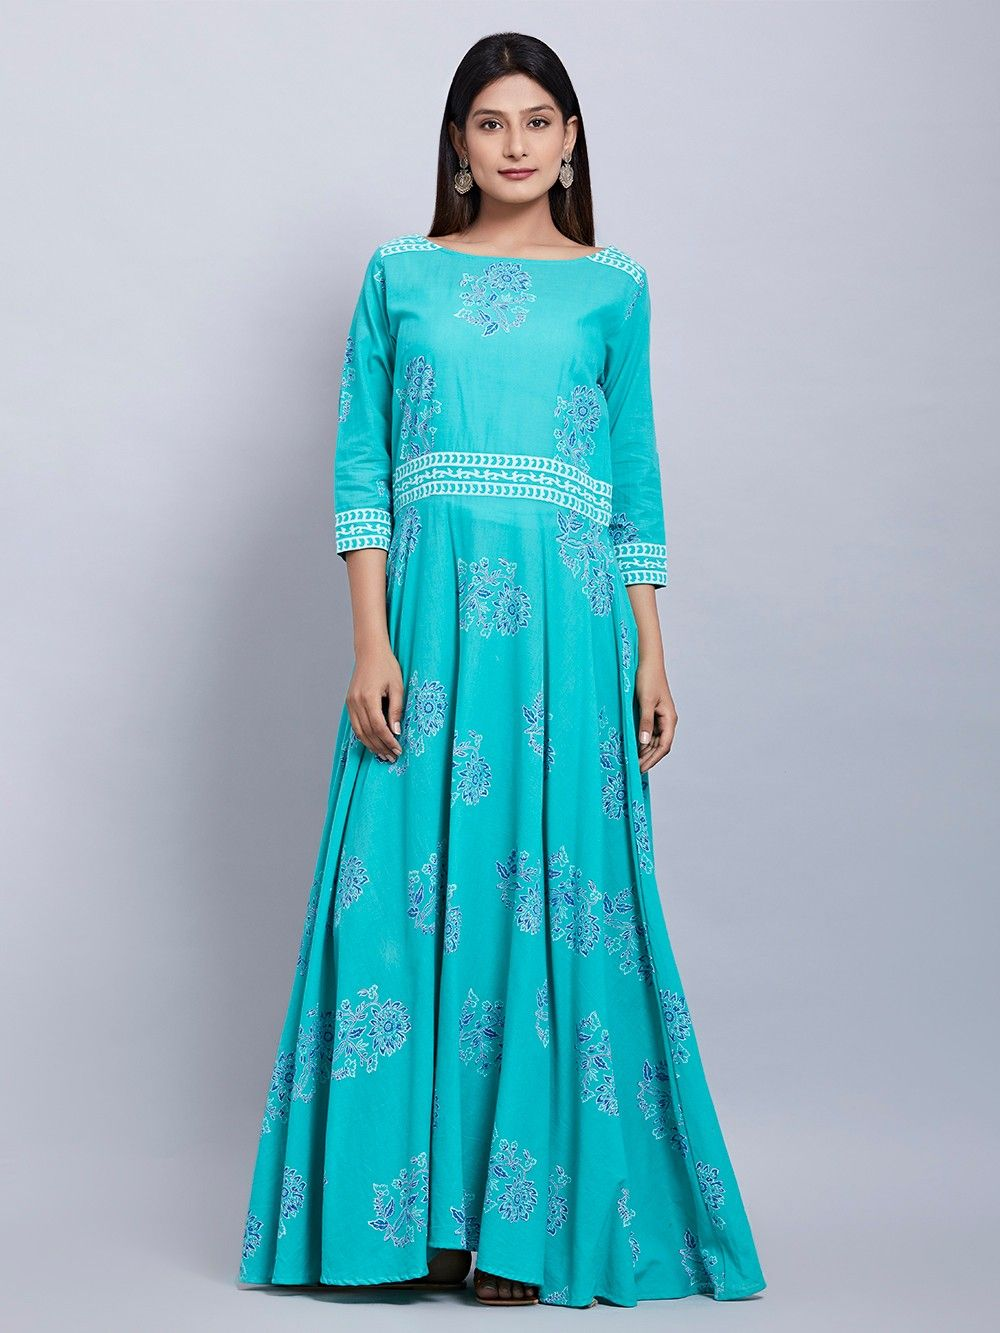 abbfeaa6c94f Buy Turquoise Hand Block Printed Cotton Maxi Dress online at Theloom